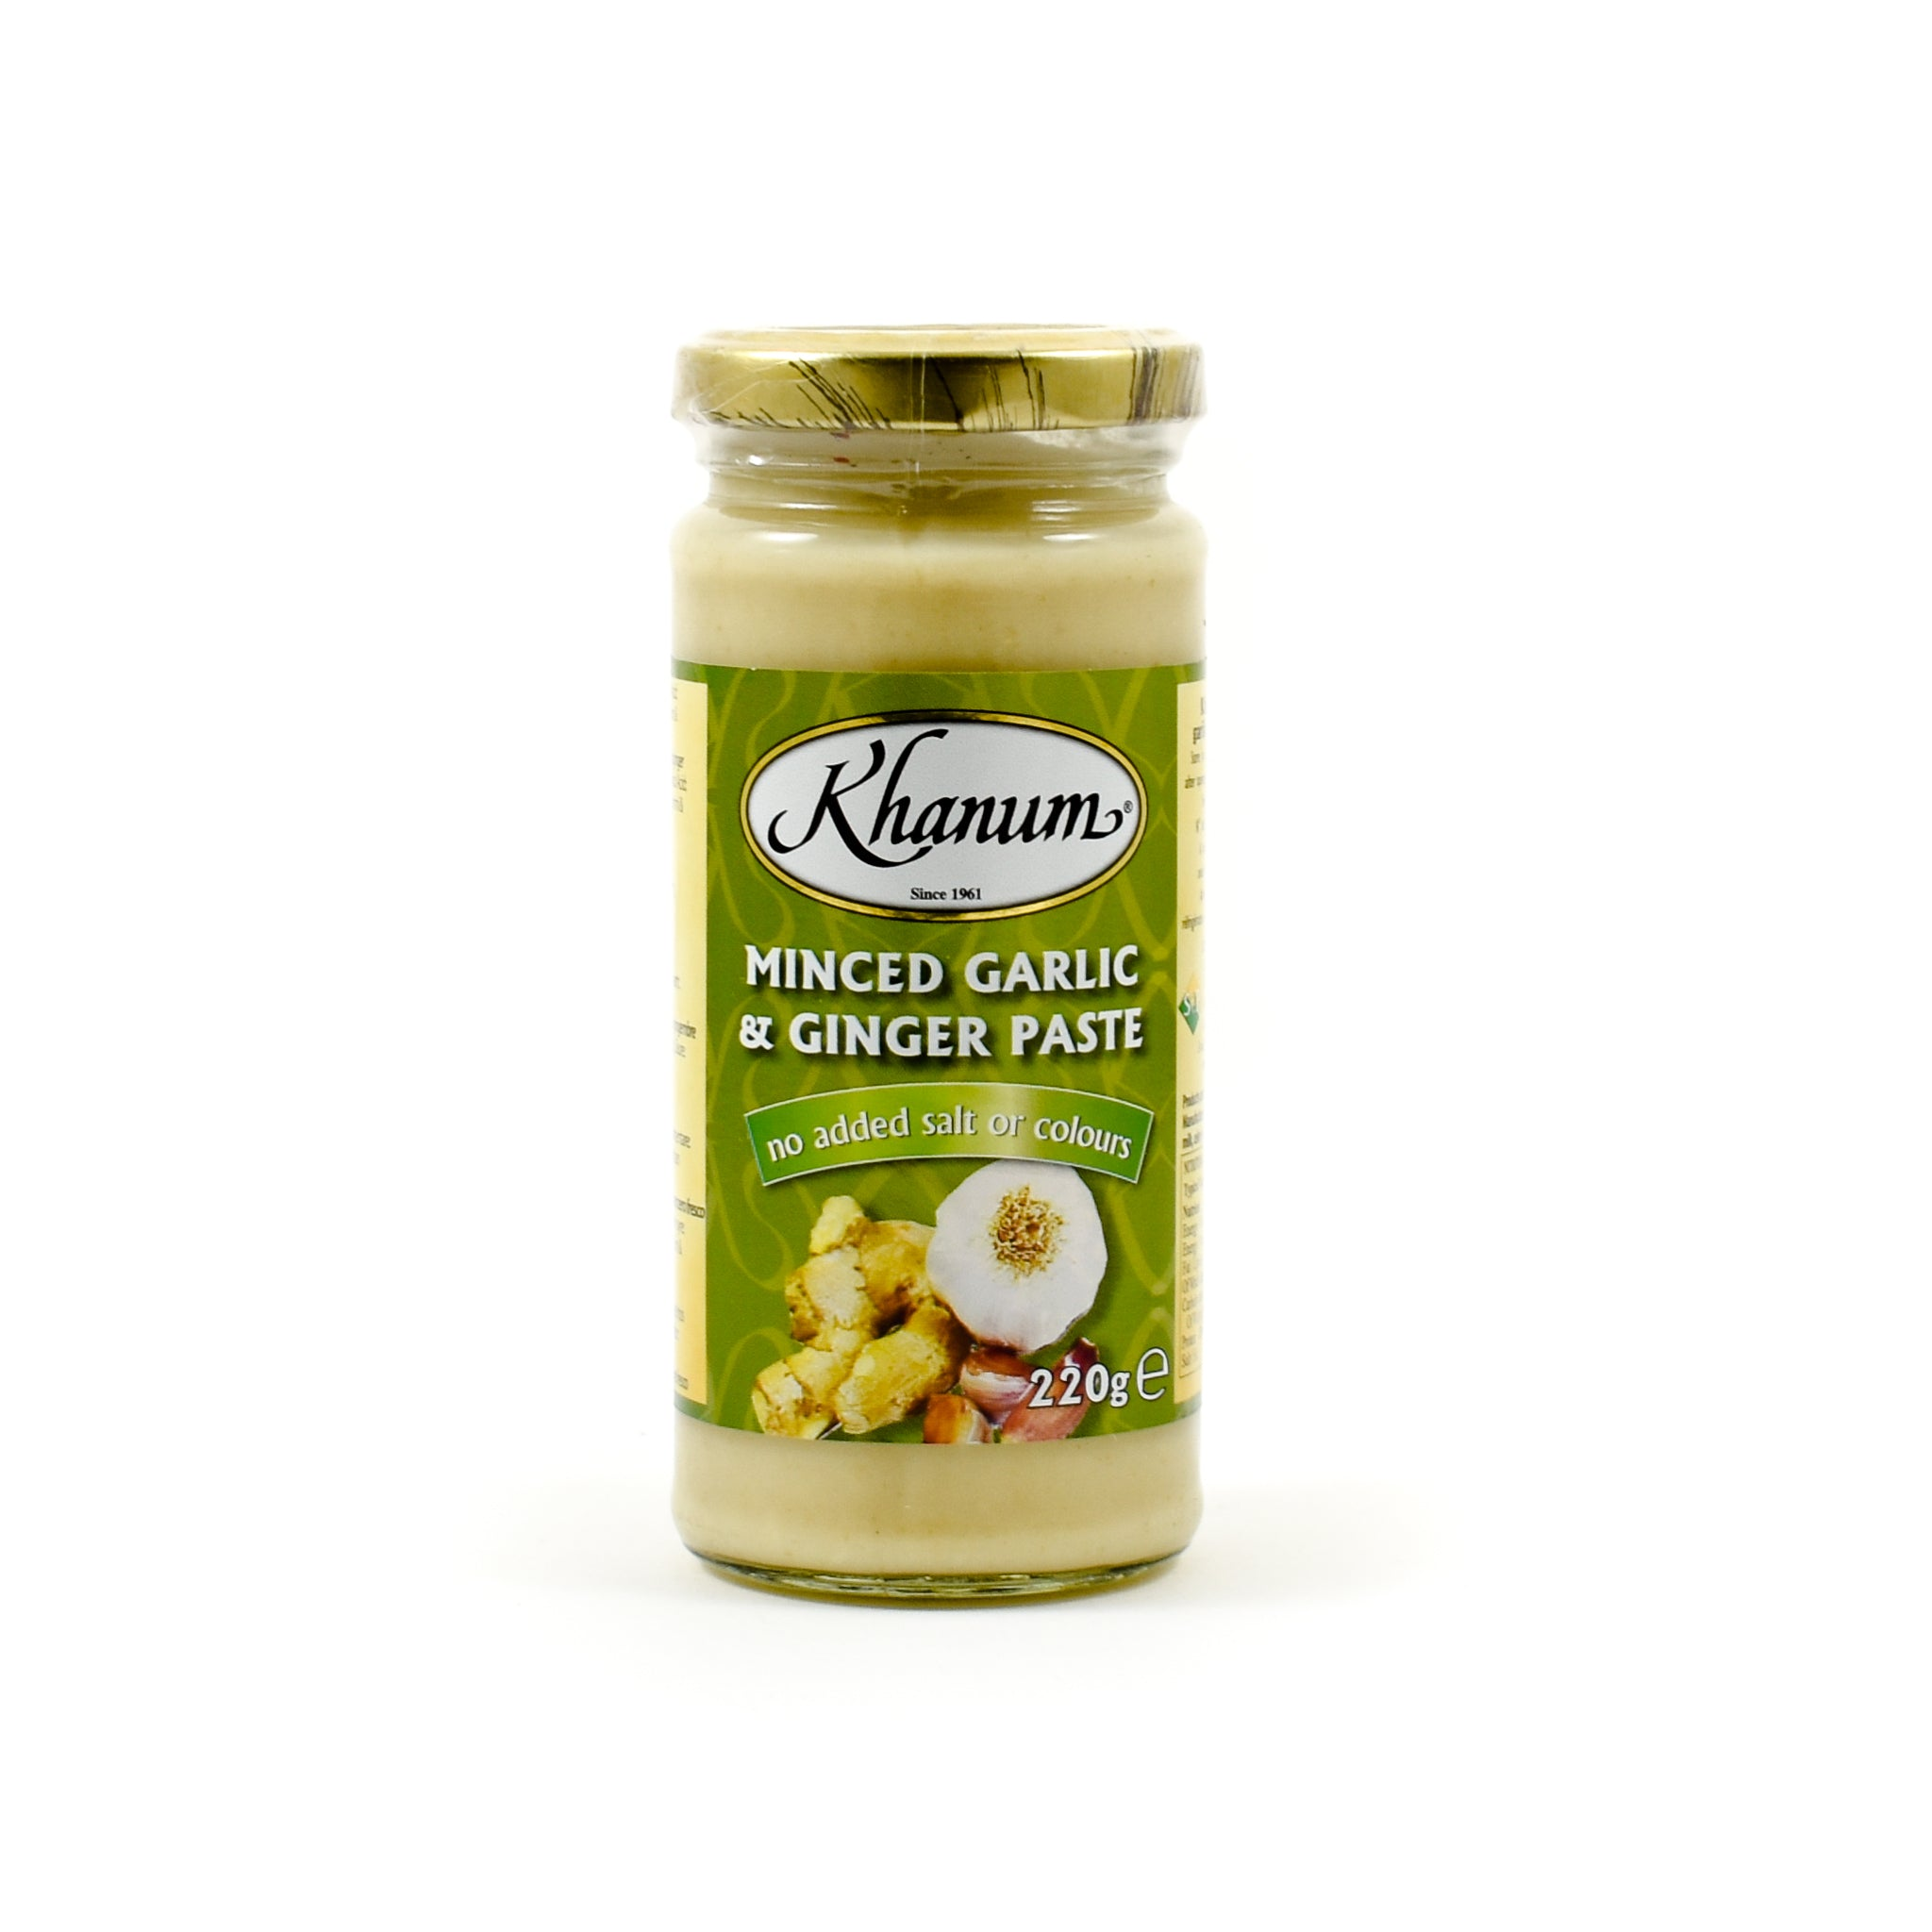 Khanum Minced Garlic & Ginger